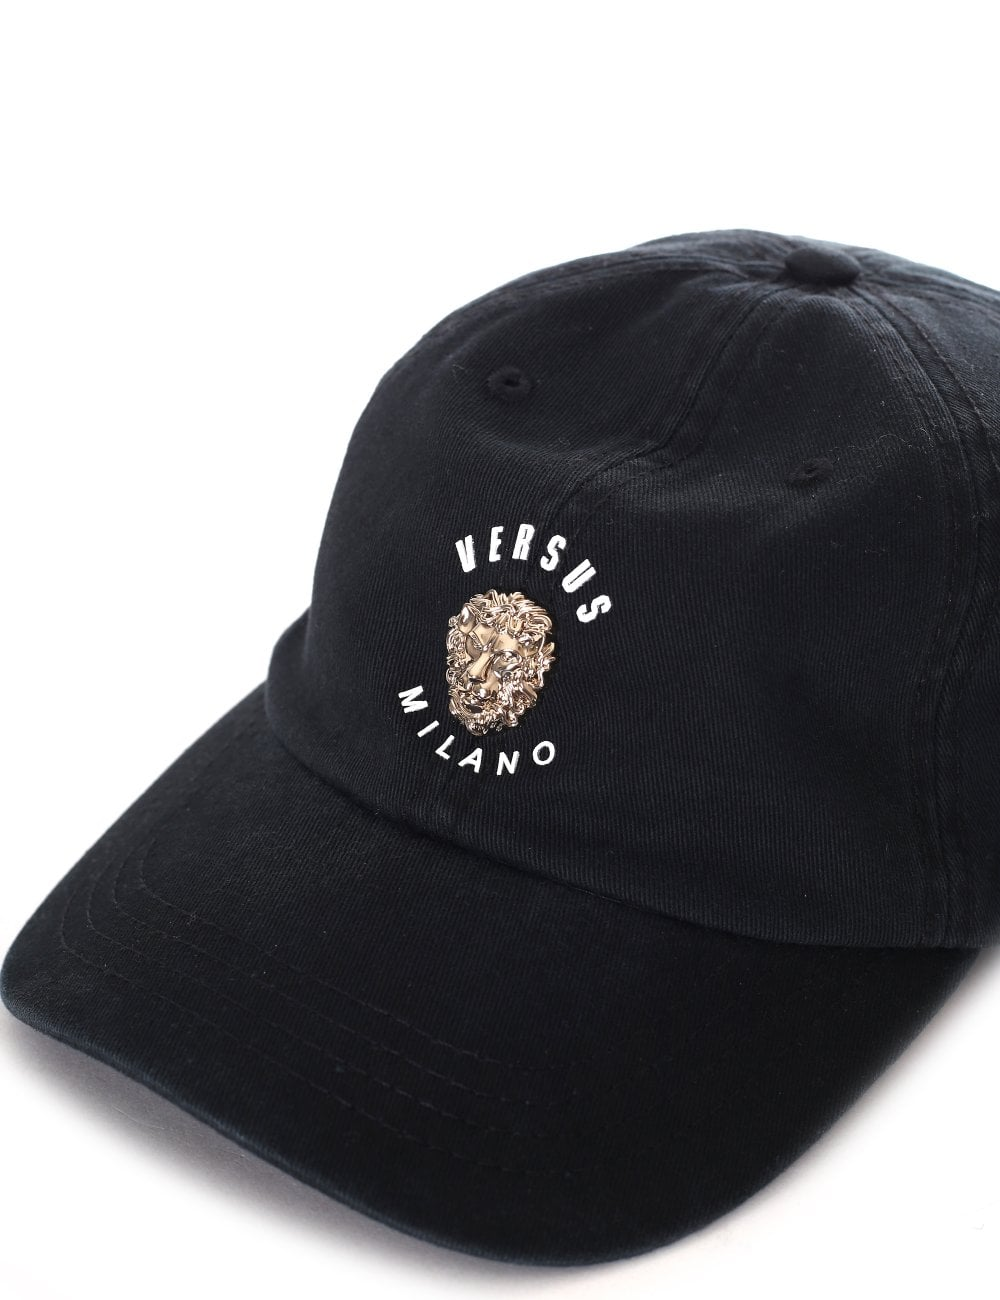 7b6143363 ... Versus Versace Men's Lion Cap. Tap image to zoom. Men' ...